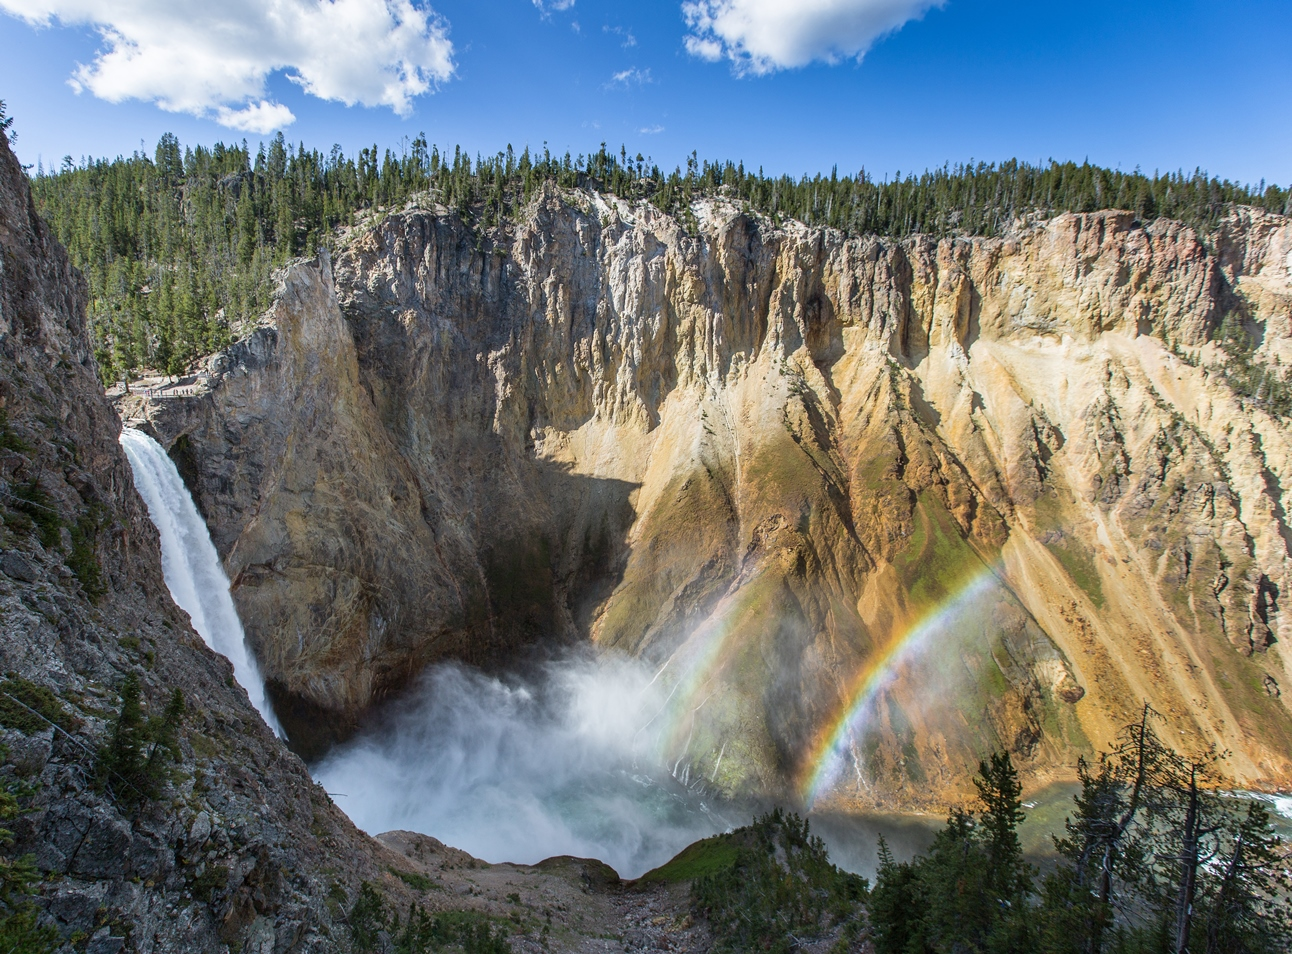 yellowstone_Double rainbow and Lower Falls from Uncle Toms Trail_credit Neal Herbert